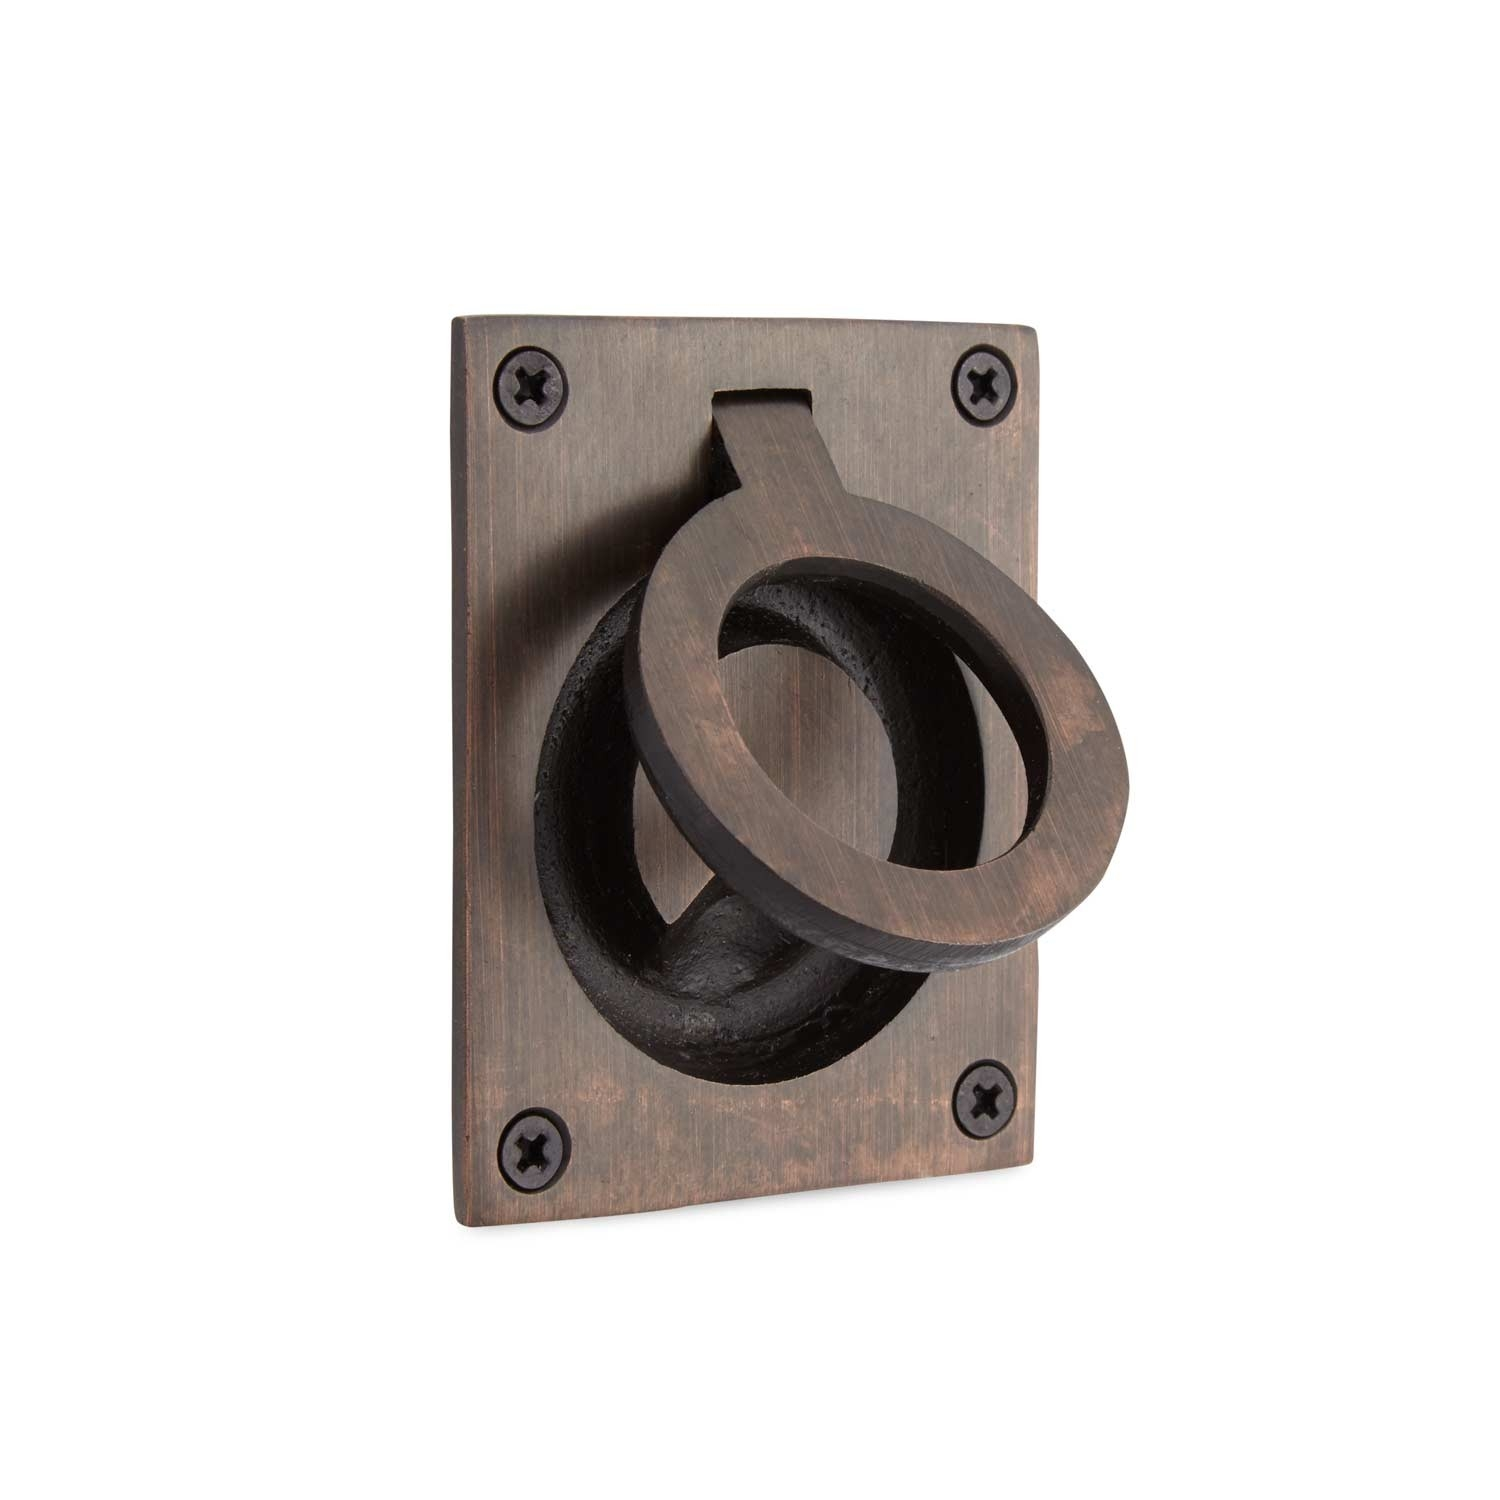 Flush Mount Door Knob